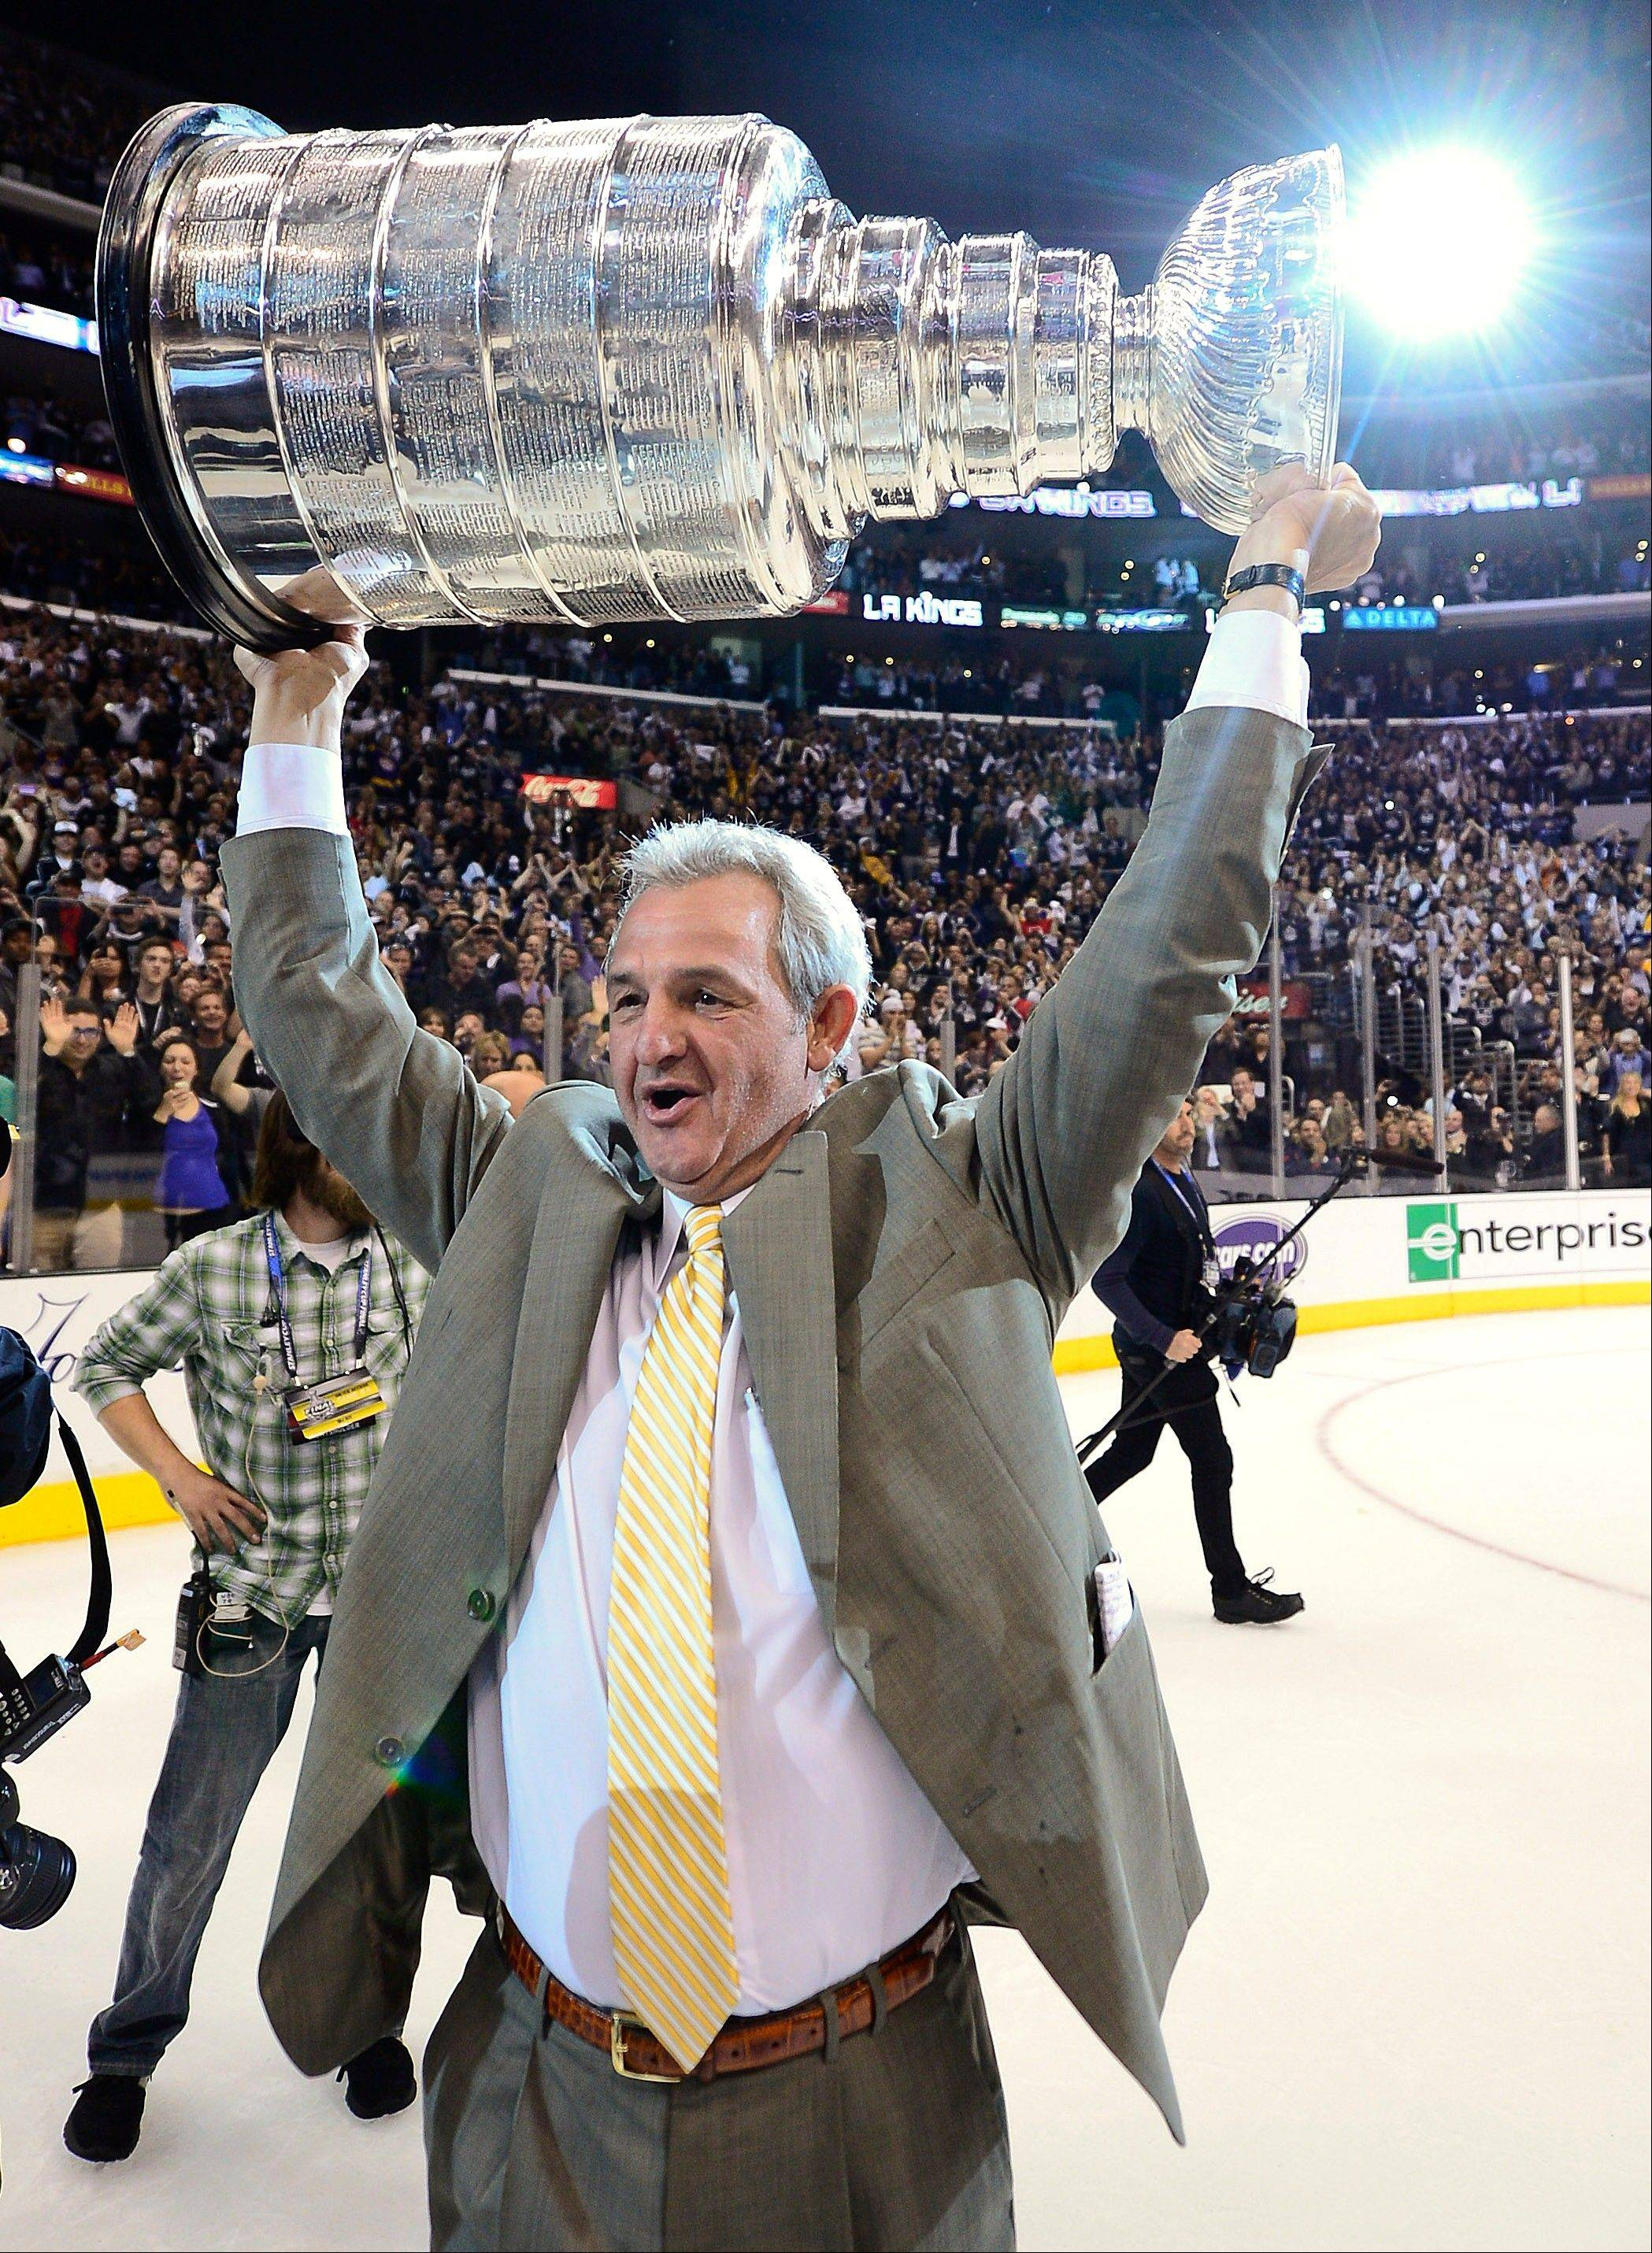 Los Angeles Kings coach Darryl Sutter hoists the Stanley Cup after beating the New Jersey Devils 6-1 during Game 6 of the Stanley Cup Finals.